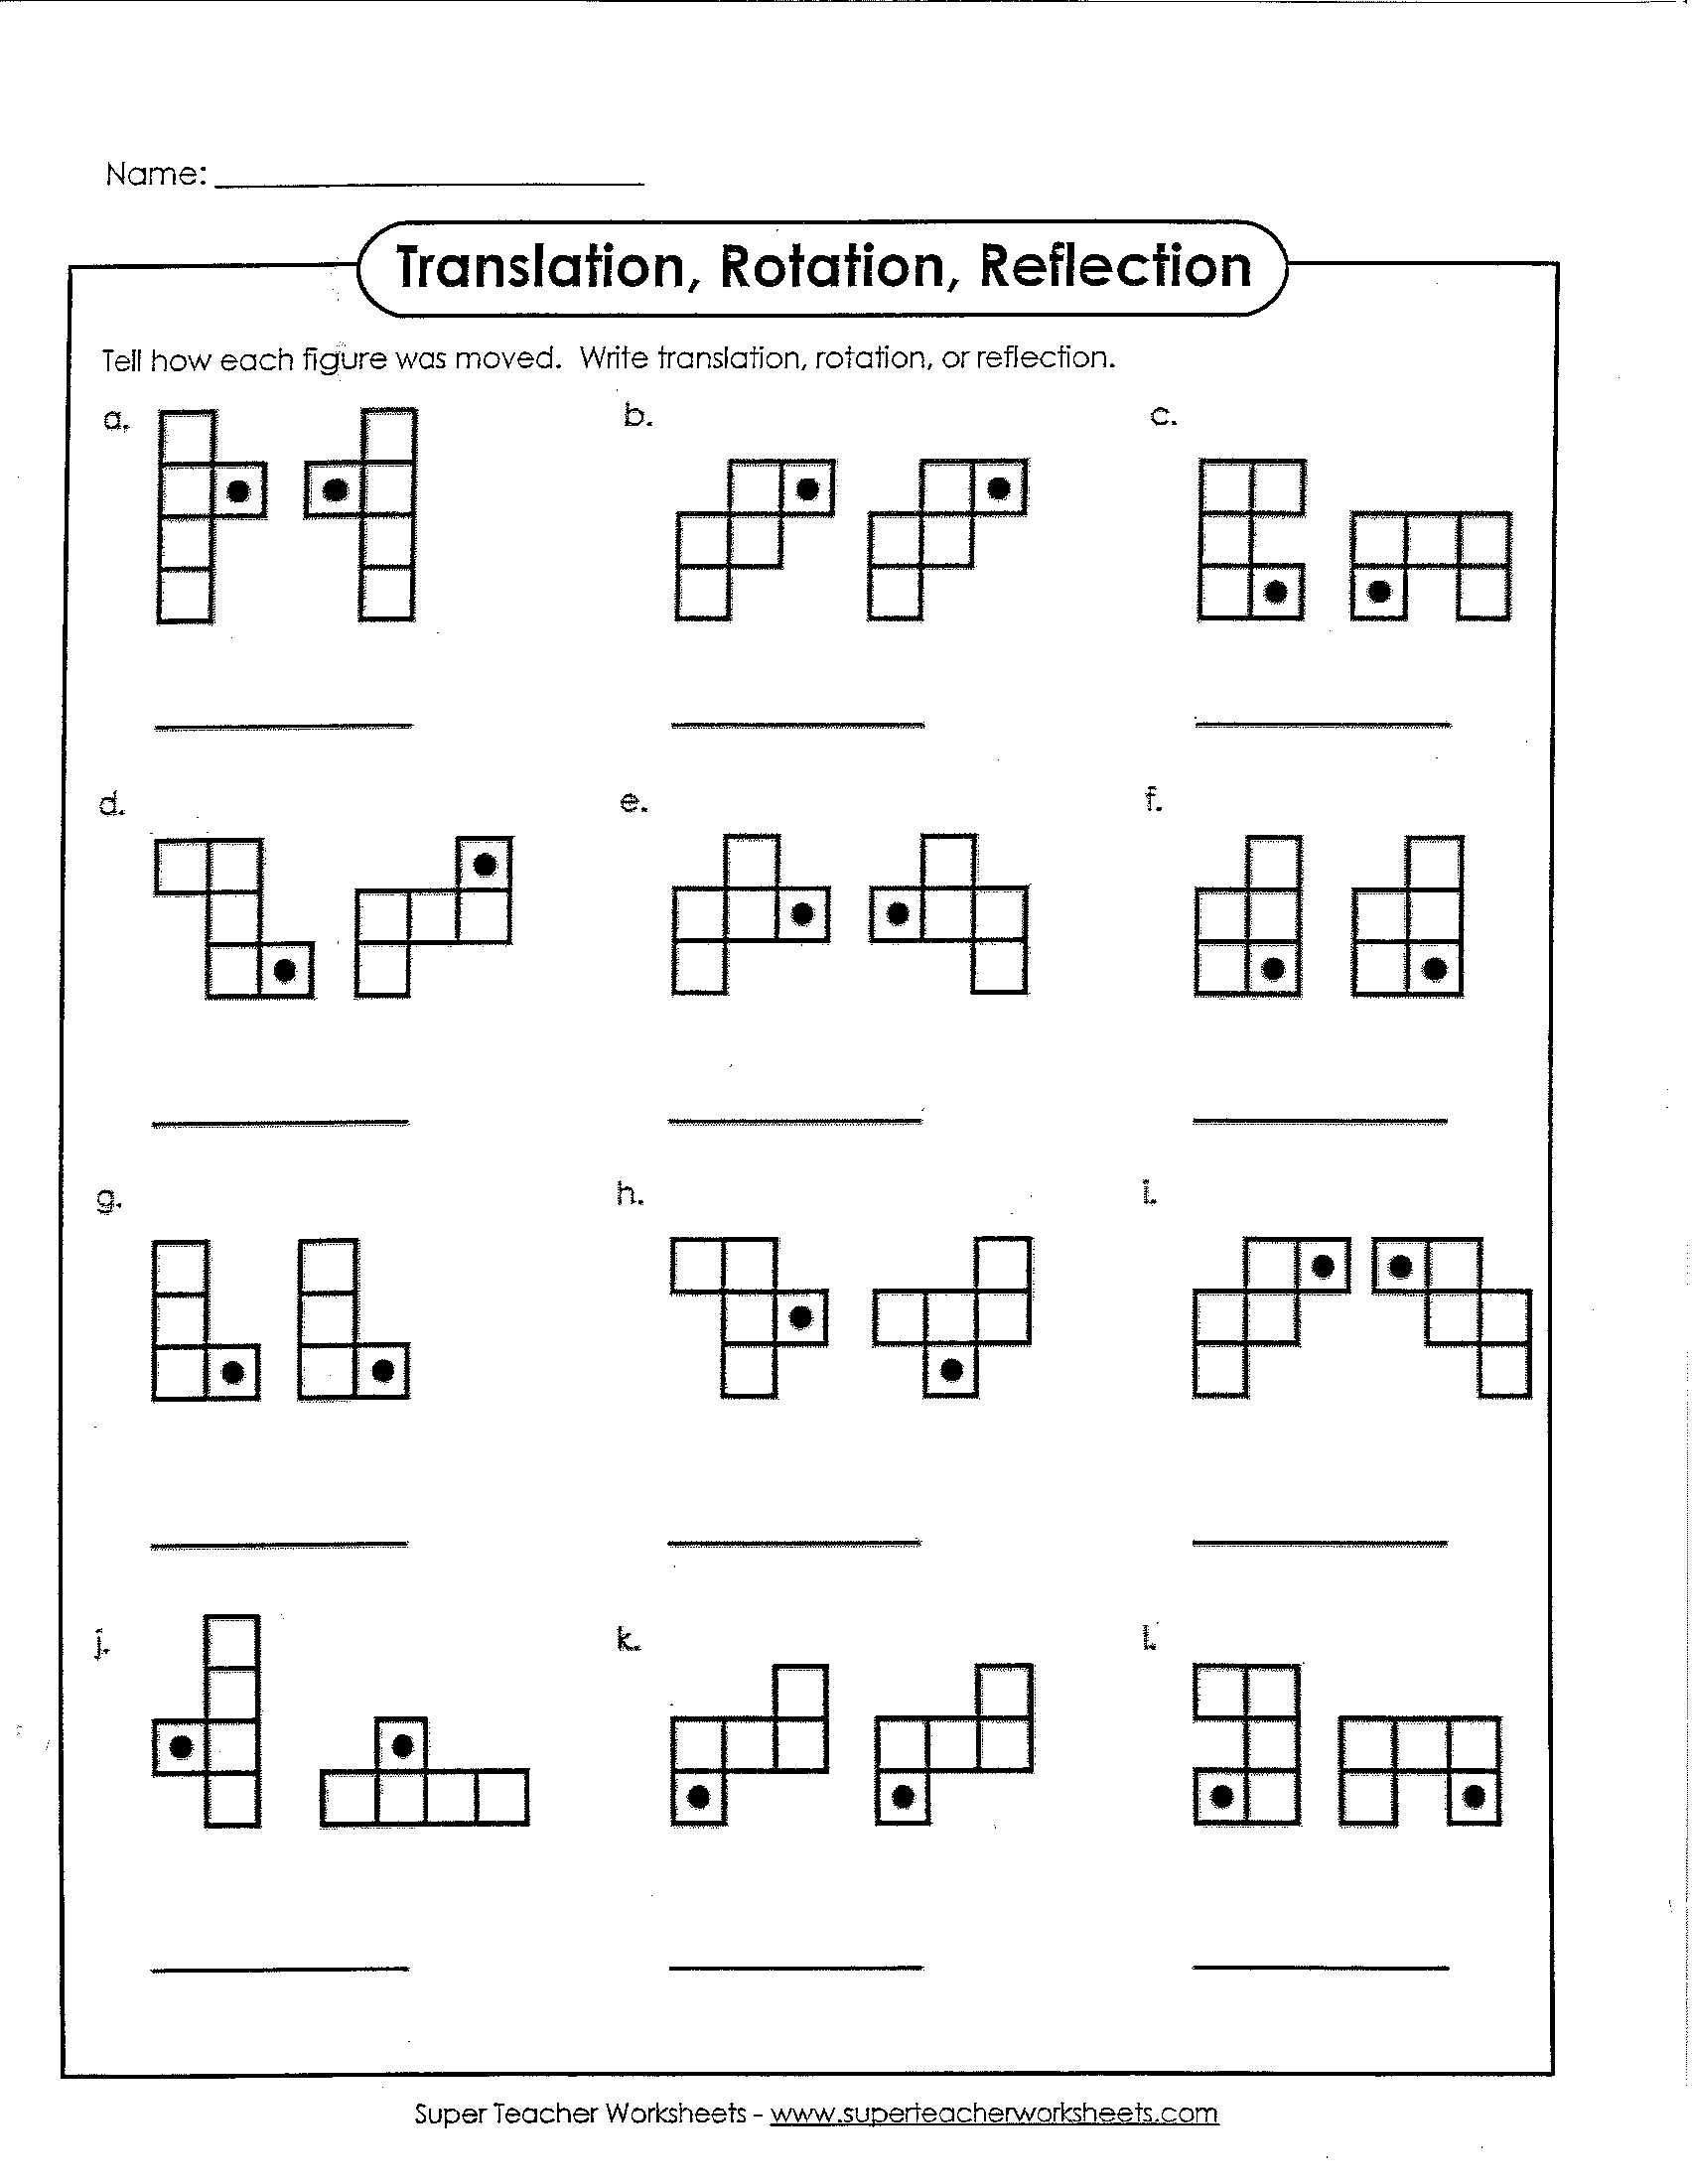 20 Best Images Of Transformation Worksheets 8th Grade Math